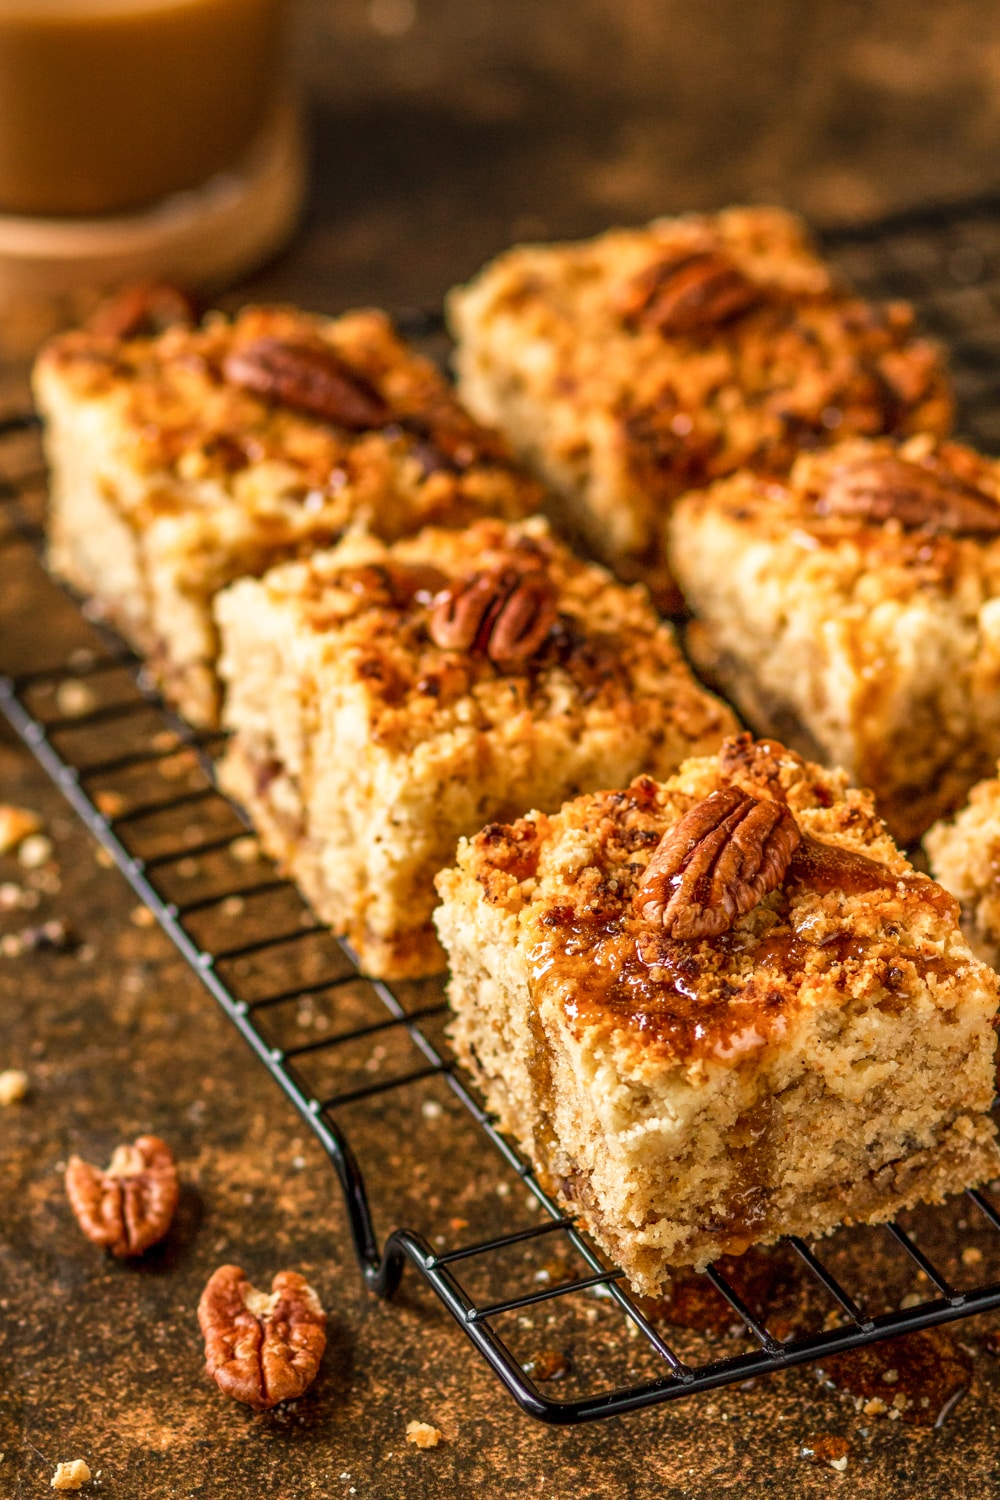 Three pieces of gluten free coffee cake in a row with two pieces to the side in a blurred view. There is one pecan on each piece of coffee cake and the coffee cake is on a wire rack on top of stone.